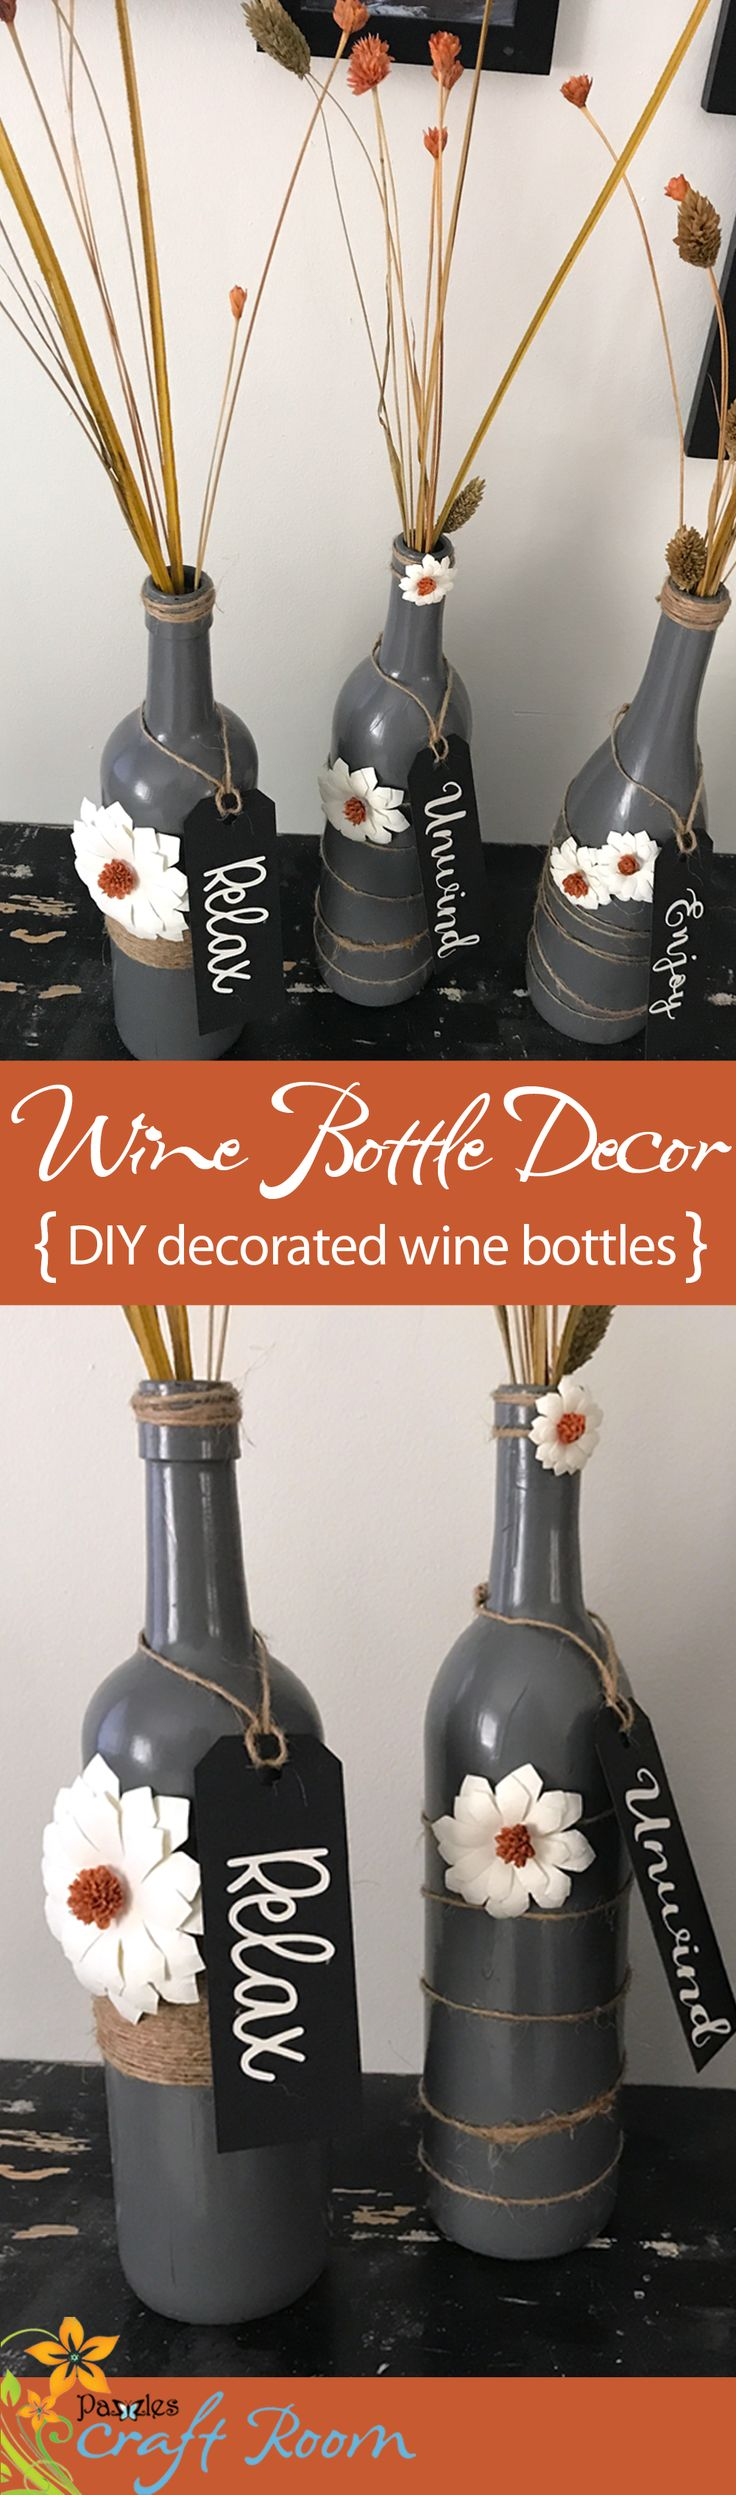 Quick and easy home decor made from wine bottles, paint, jute, and of course some paper flowers and tags cut with your machine! #paintedwinebottles